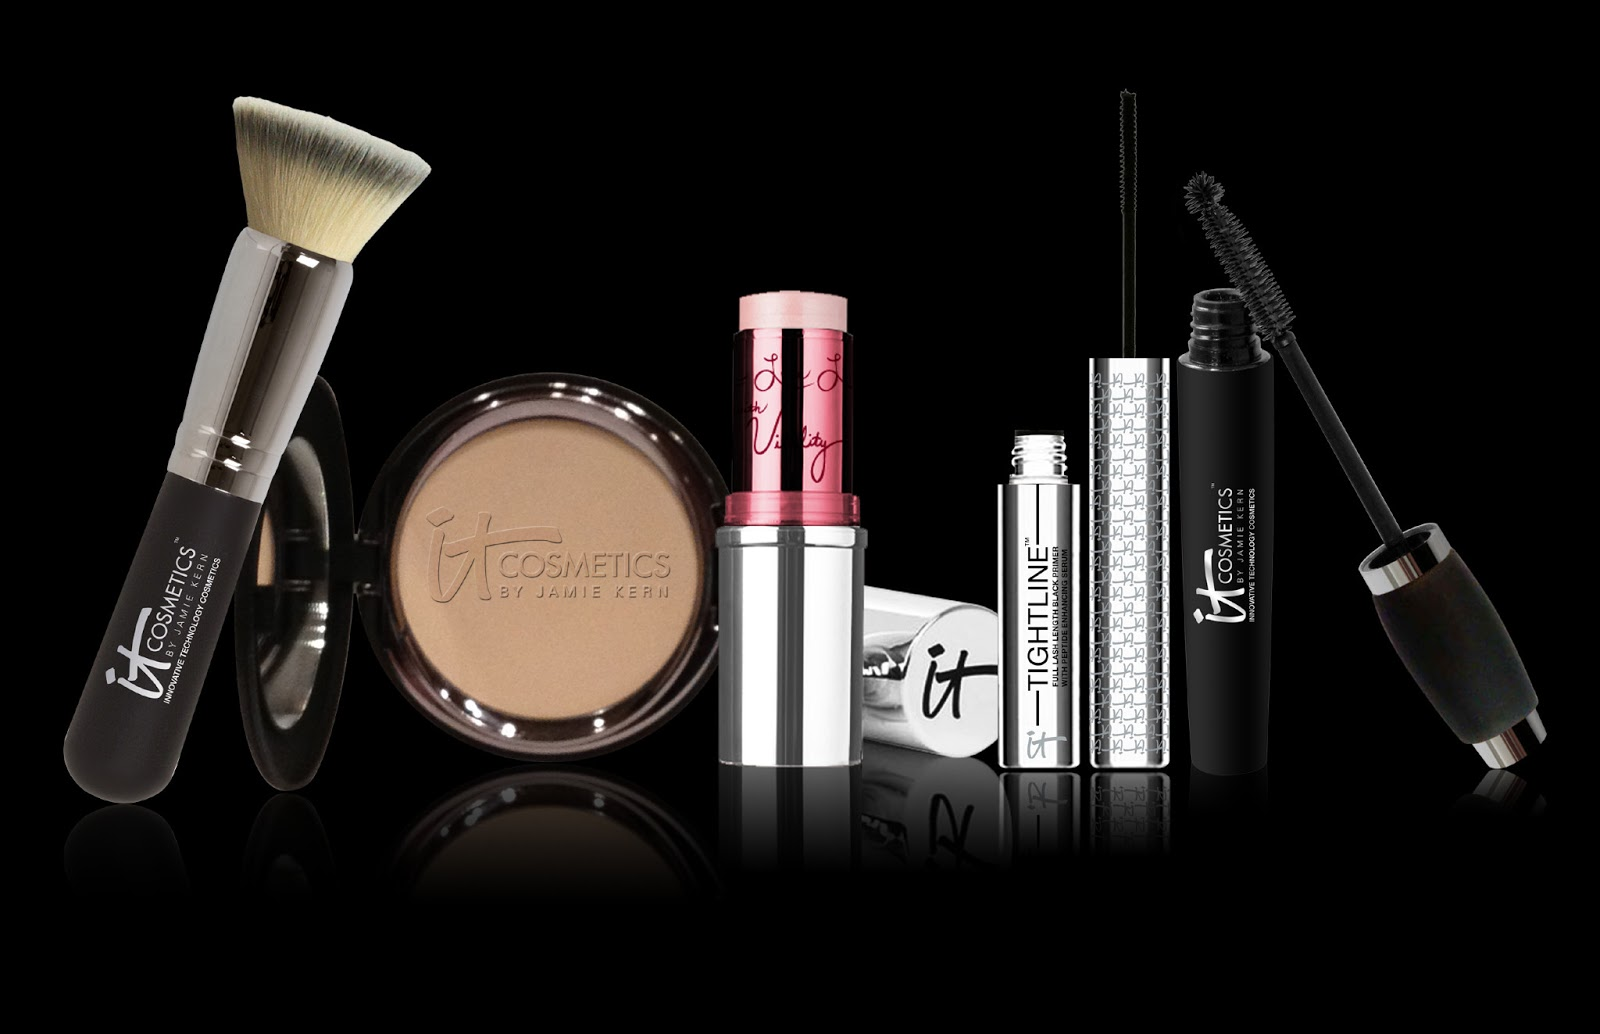 It Cosmetics' 5 piece anti-aging collection is the TSV on QVC March